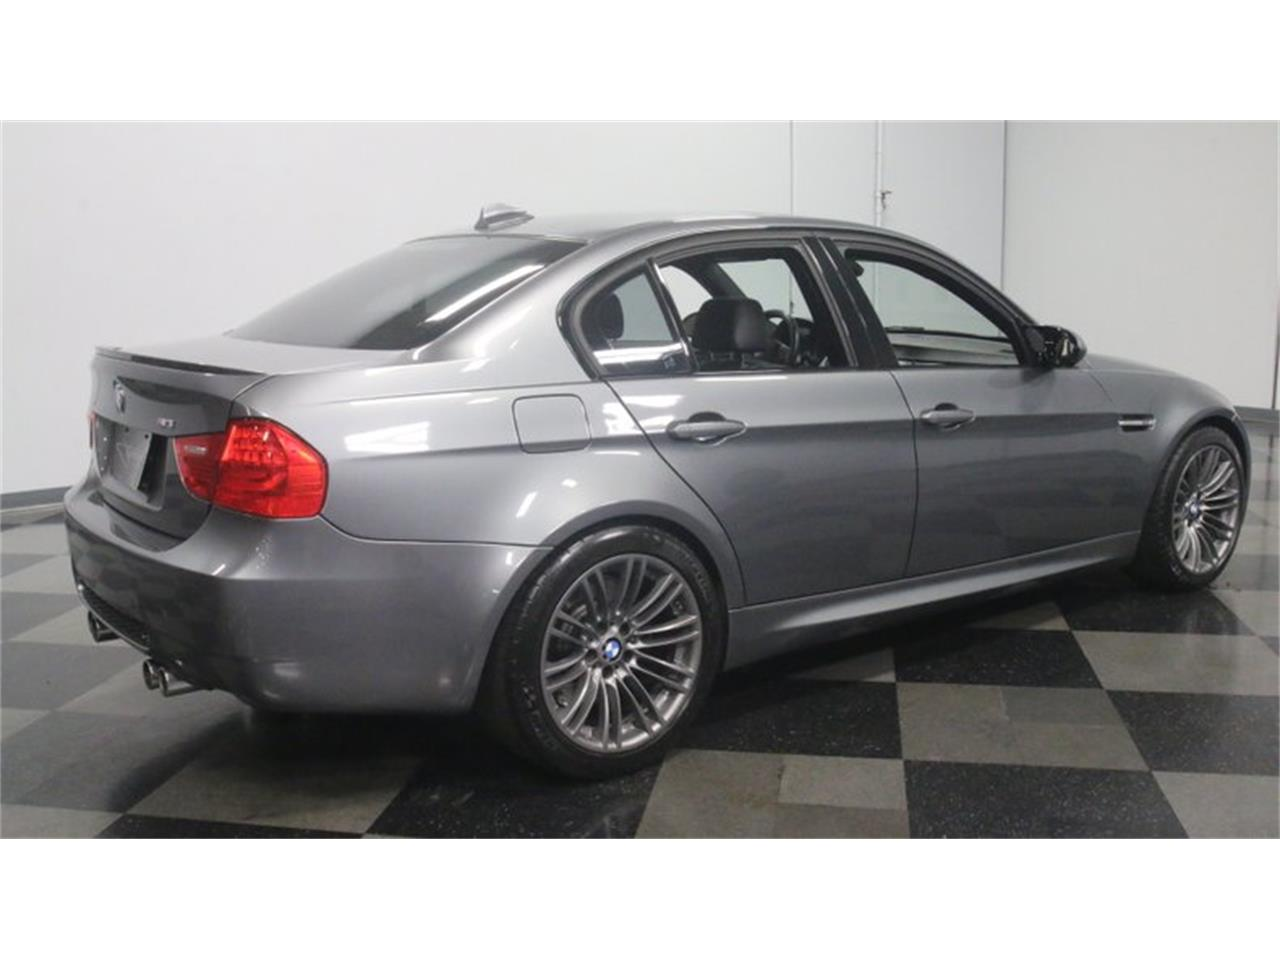 2010 BMW M3 for sale in Lithia Springs, GA – photo 14